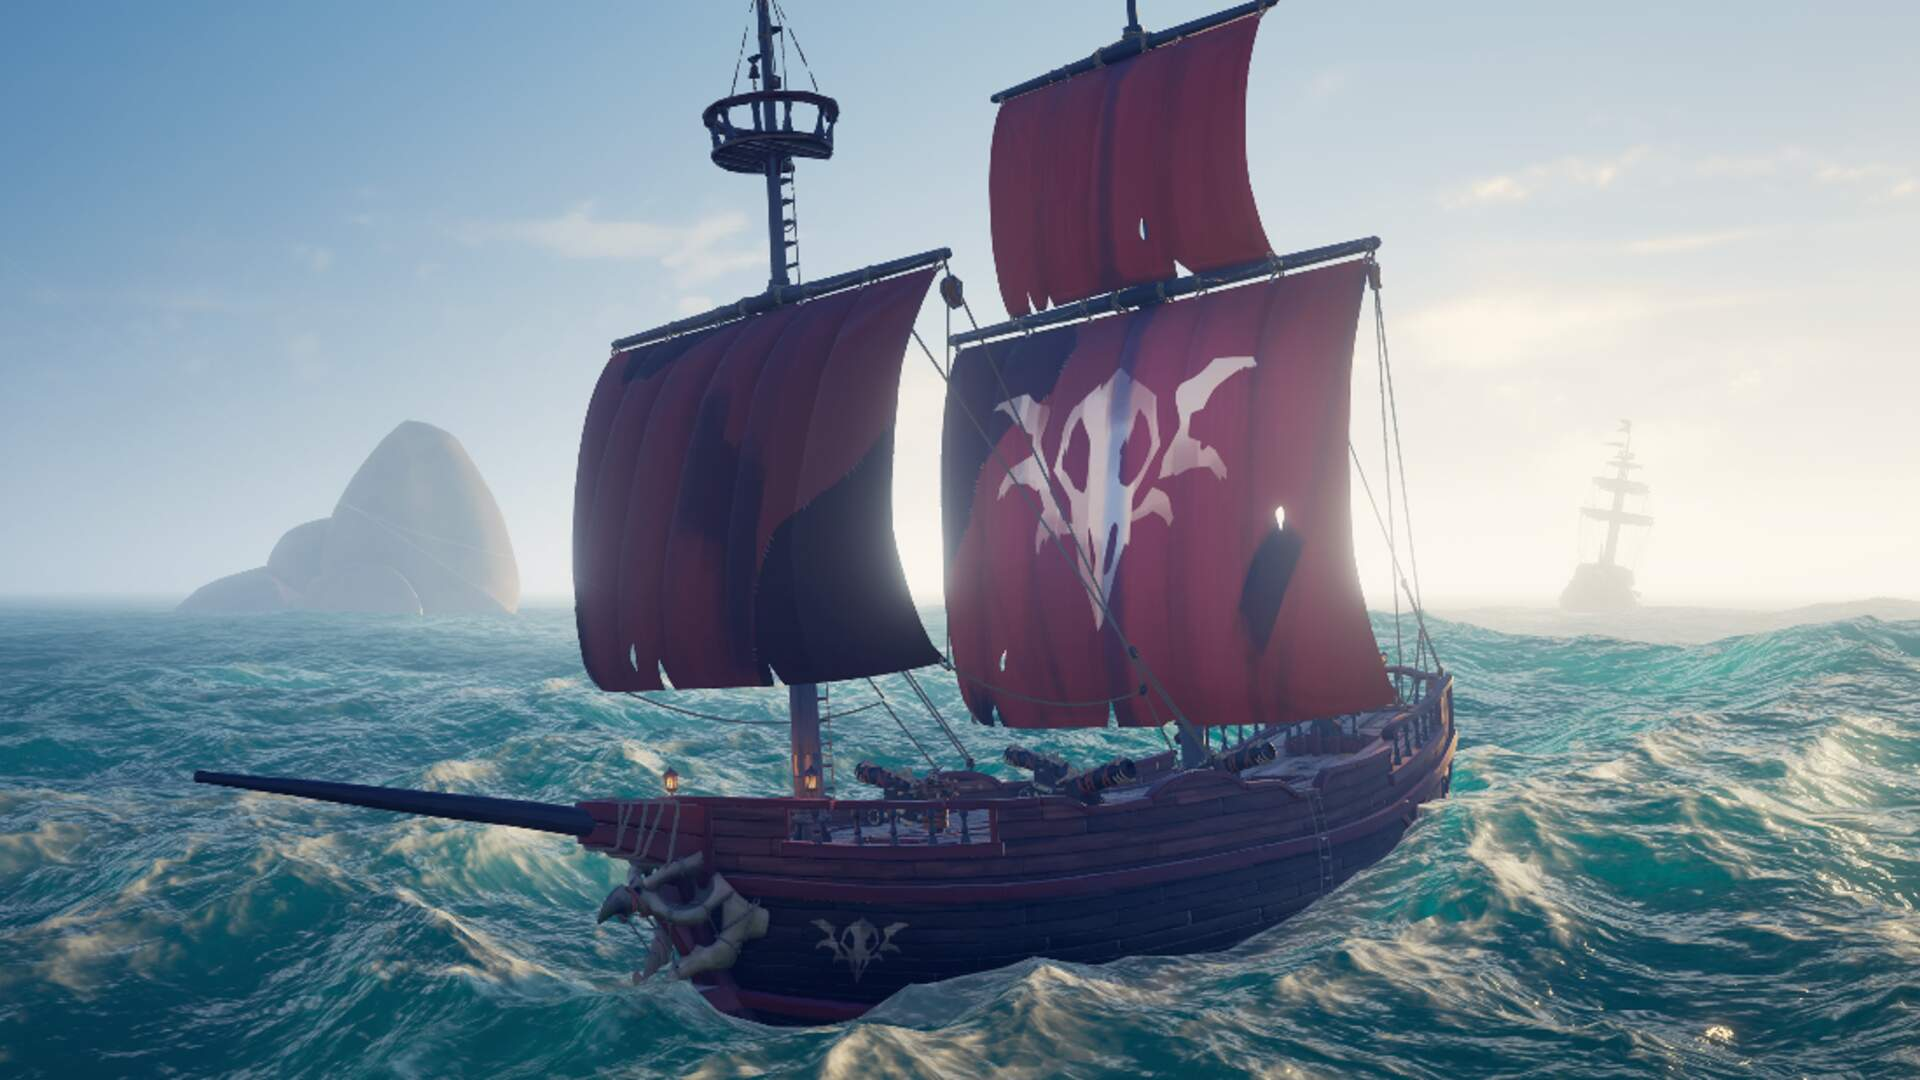 Sea of Thieves Players Can Play Together With Friends Who Don't Own the Game